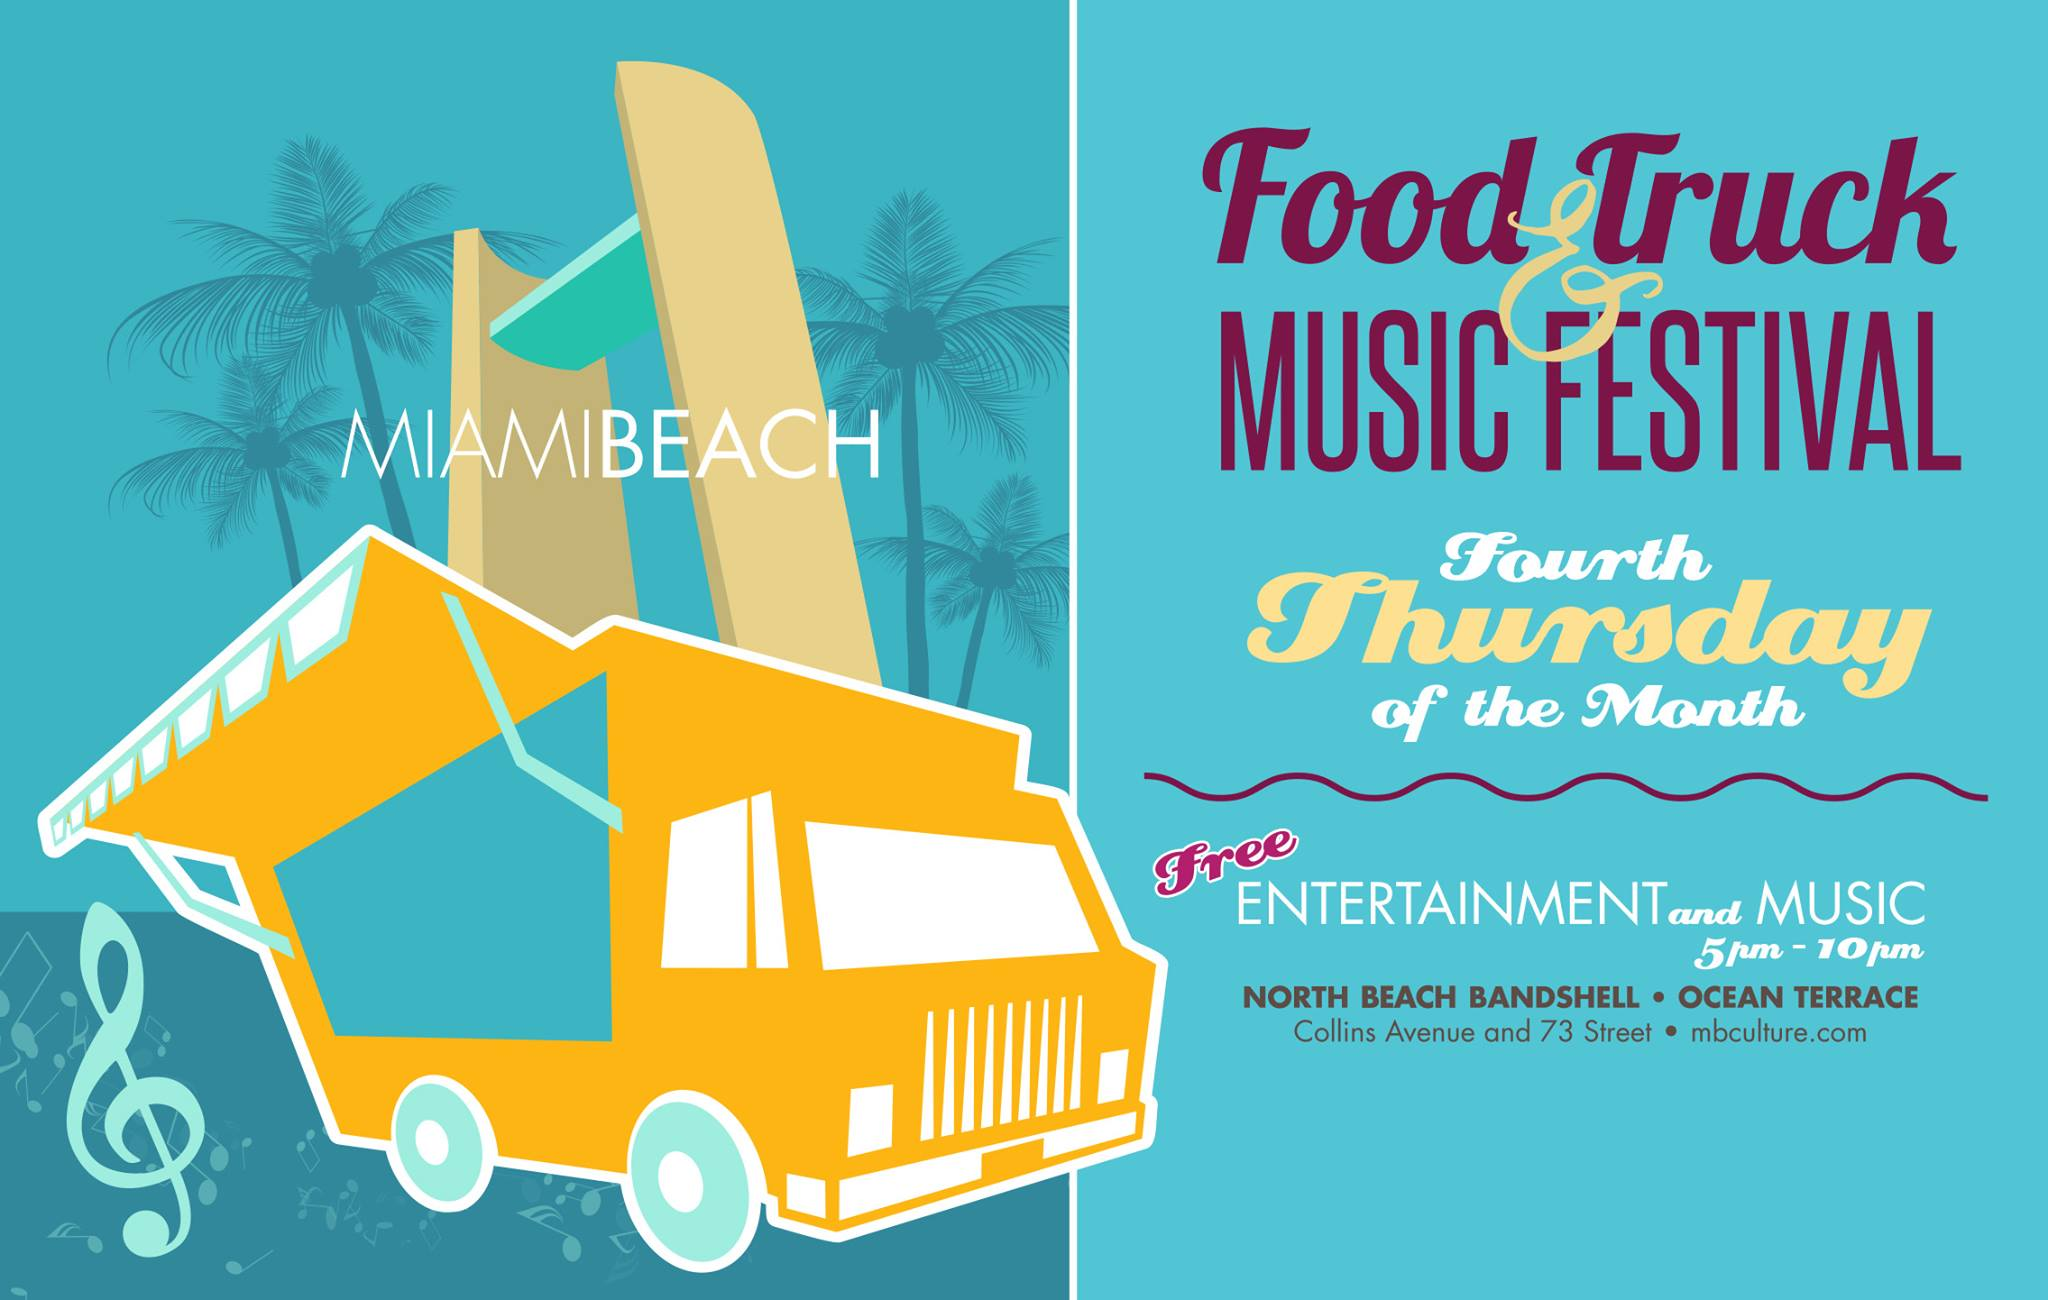 A New Night for Miami Beach Food Truck & Music Festival